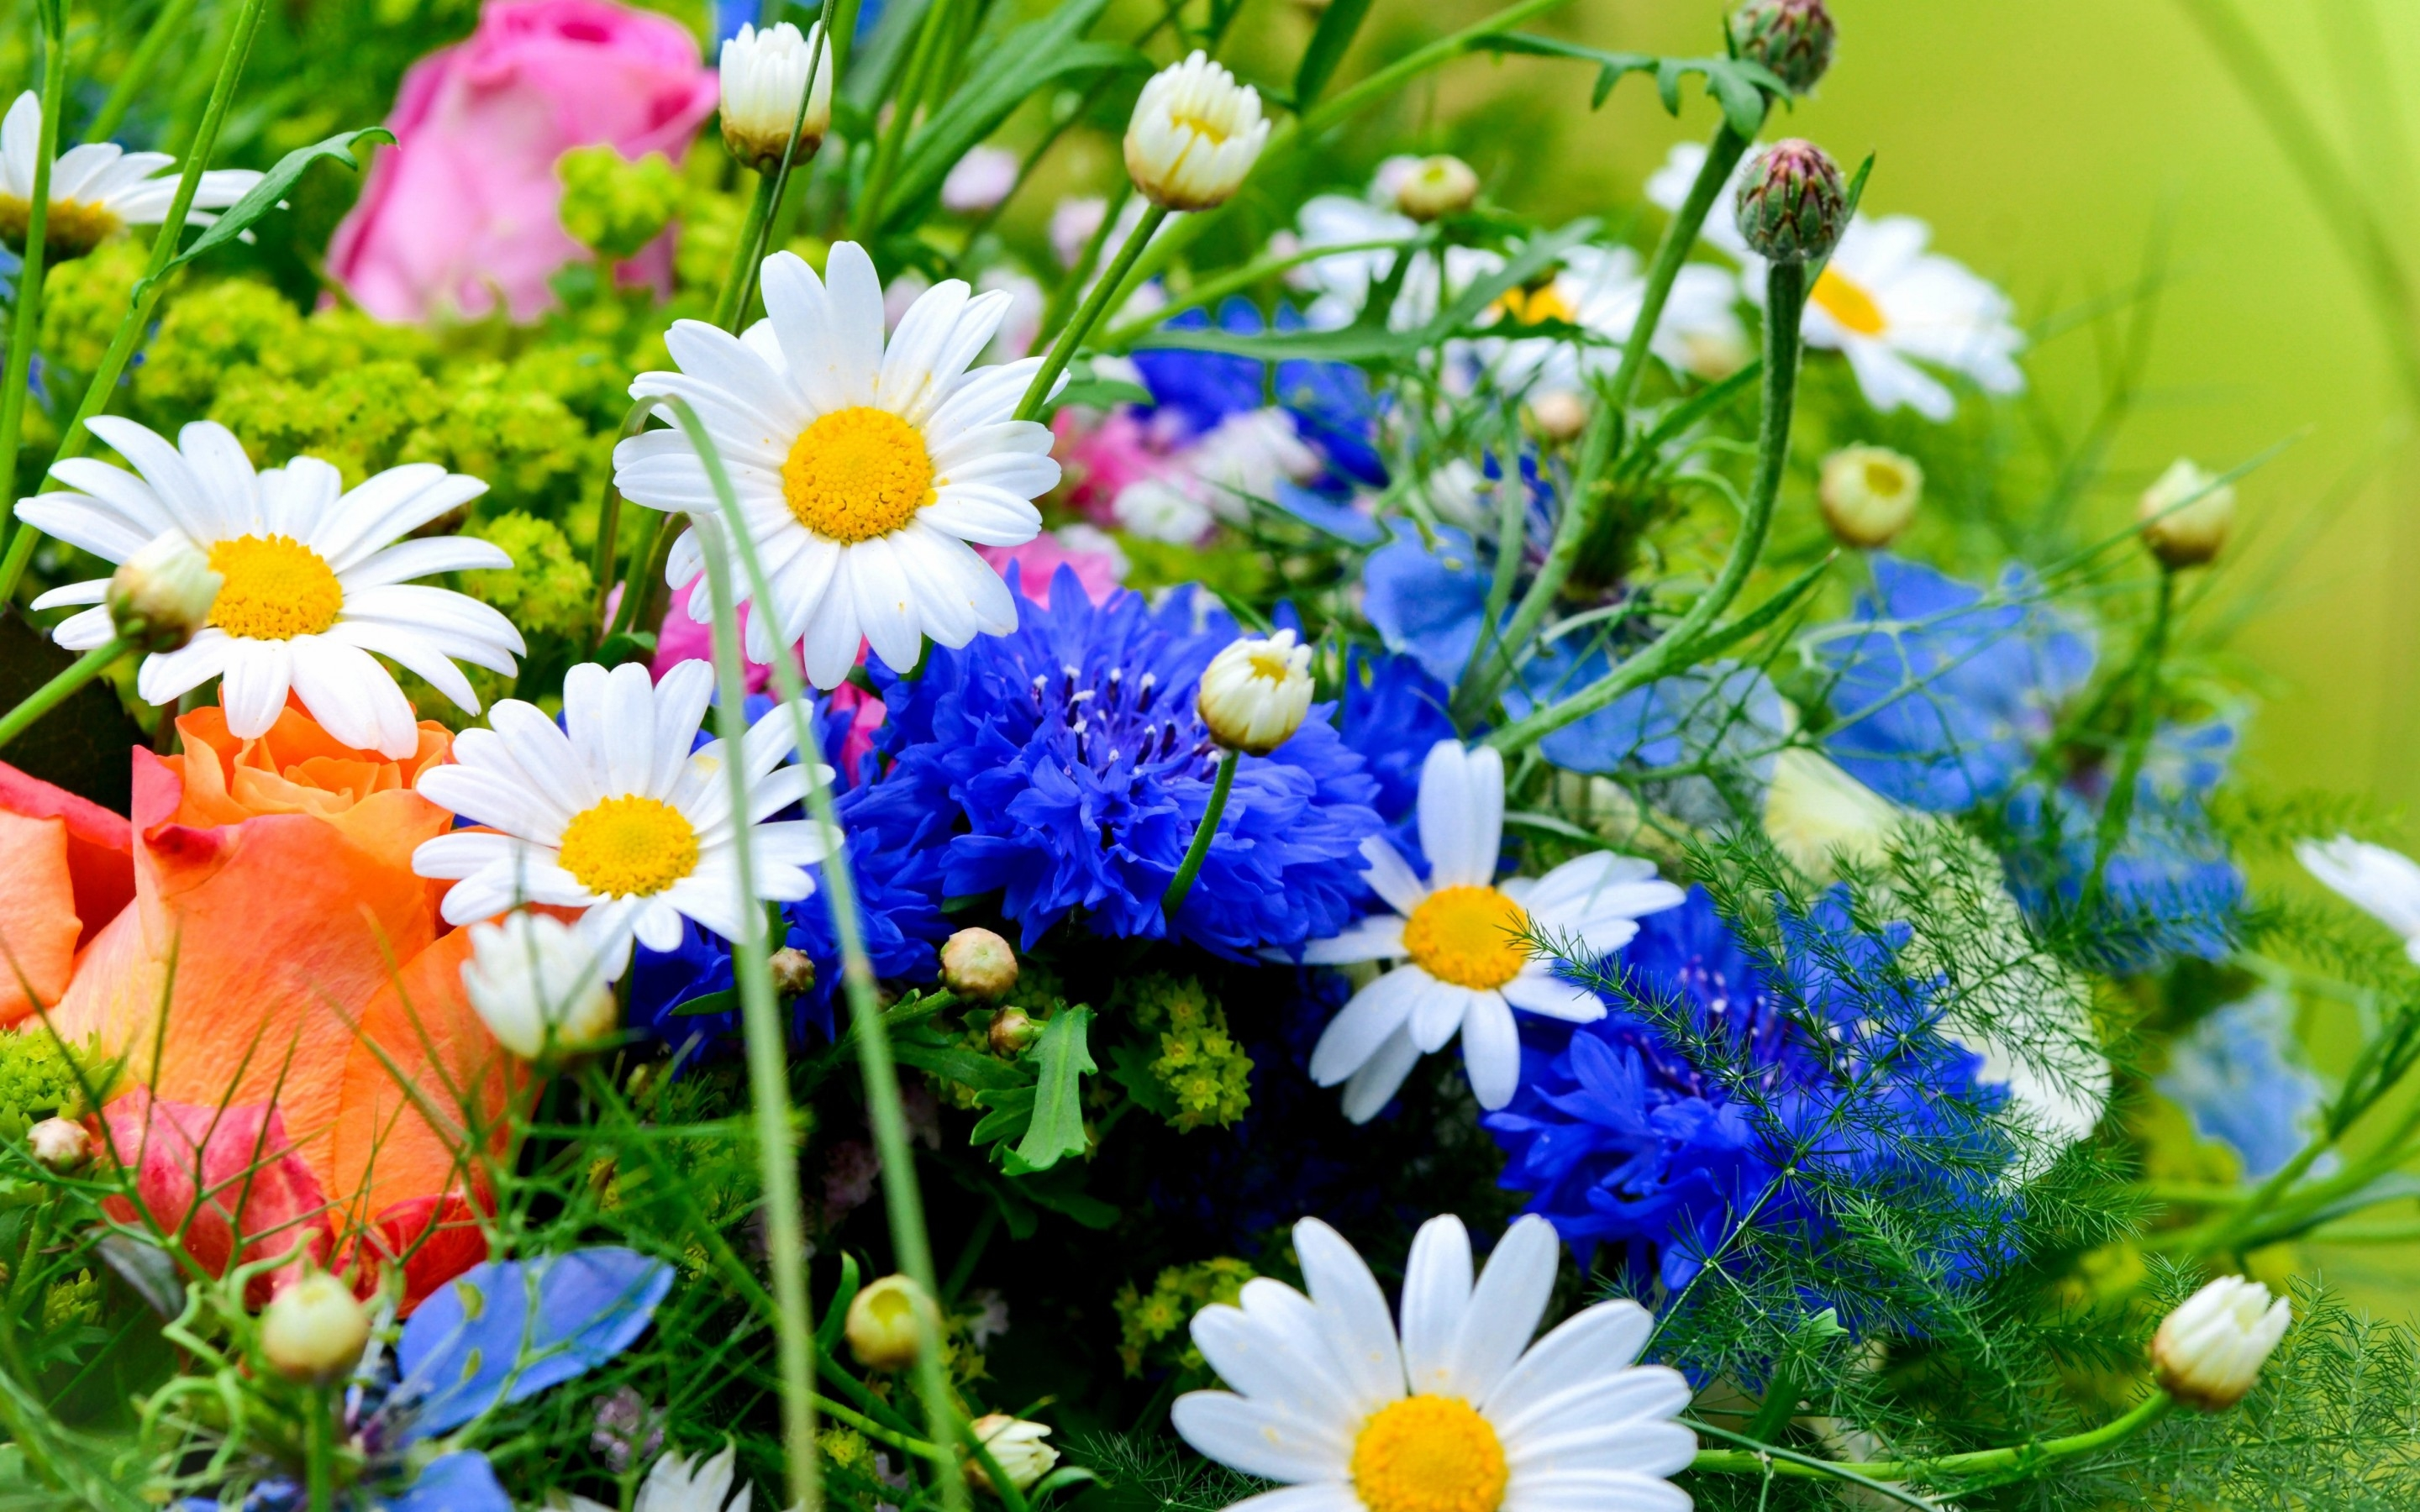 Image for flowers picture library download flowers wallpapers hd free download | Things Terry likes ... picture library download